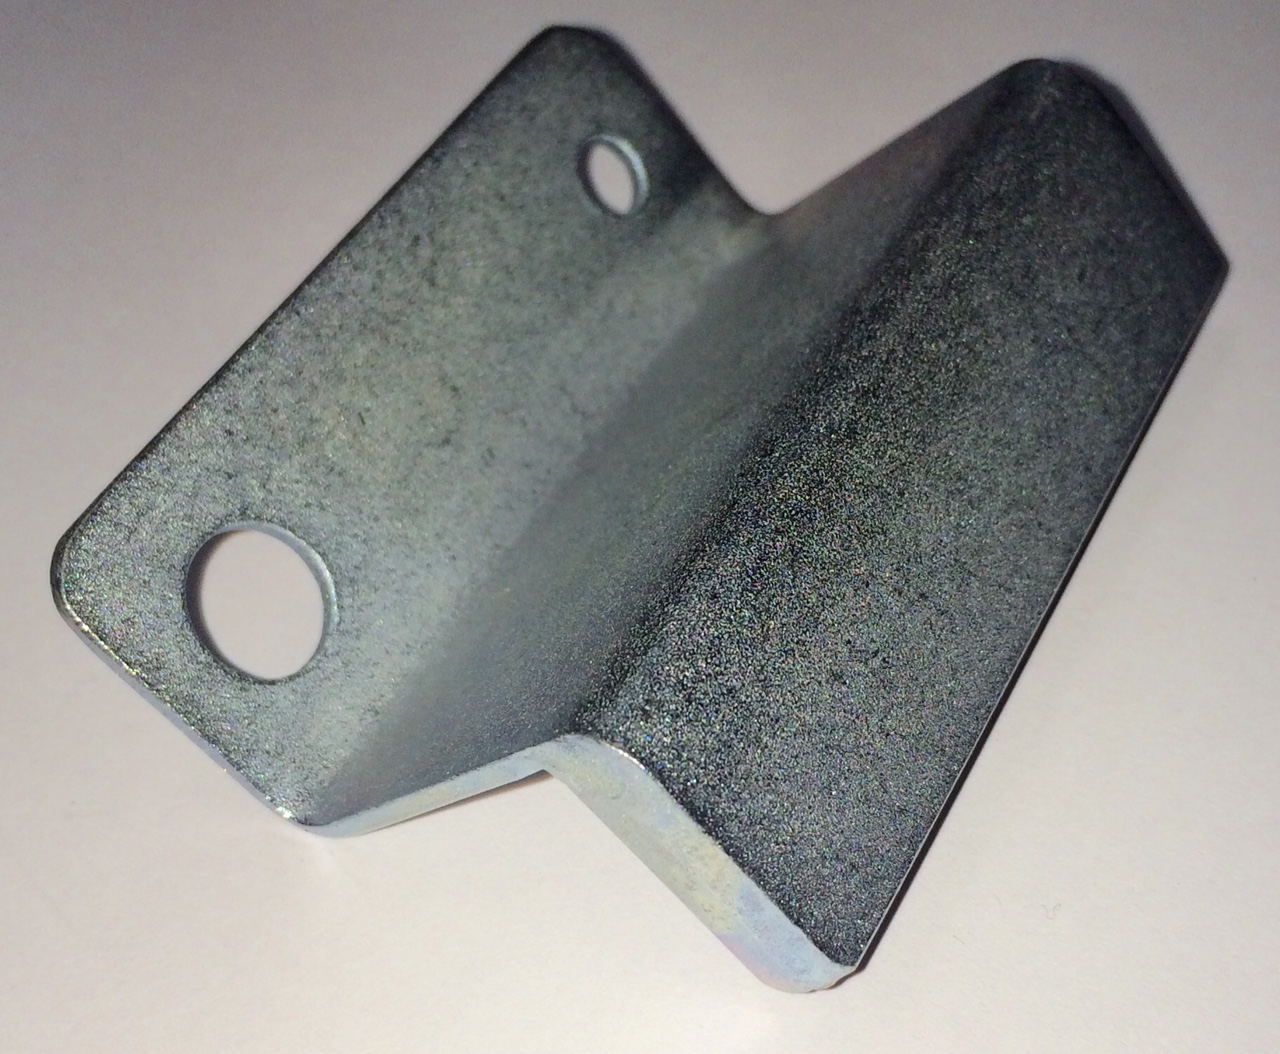 Holder of Primary Chain Cover